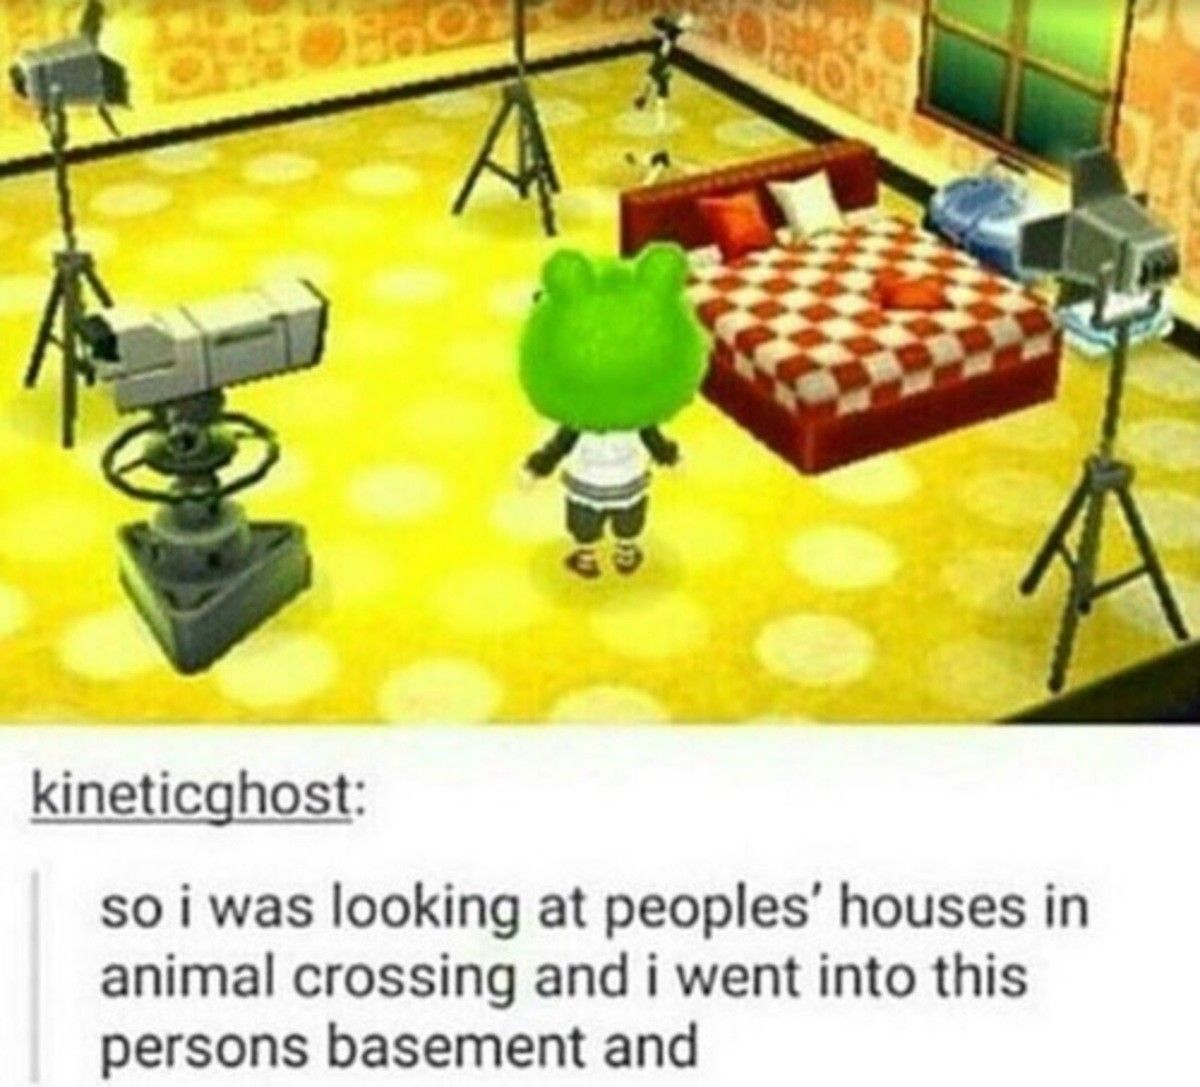 Isabelle would not approve